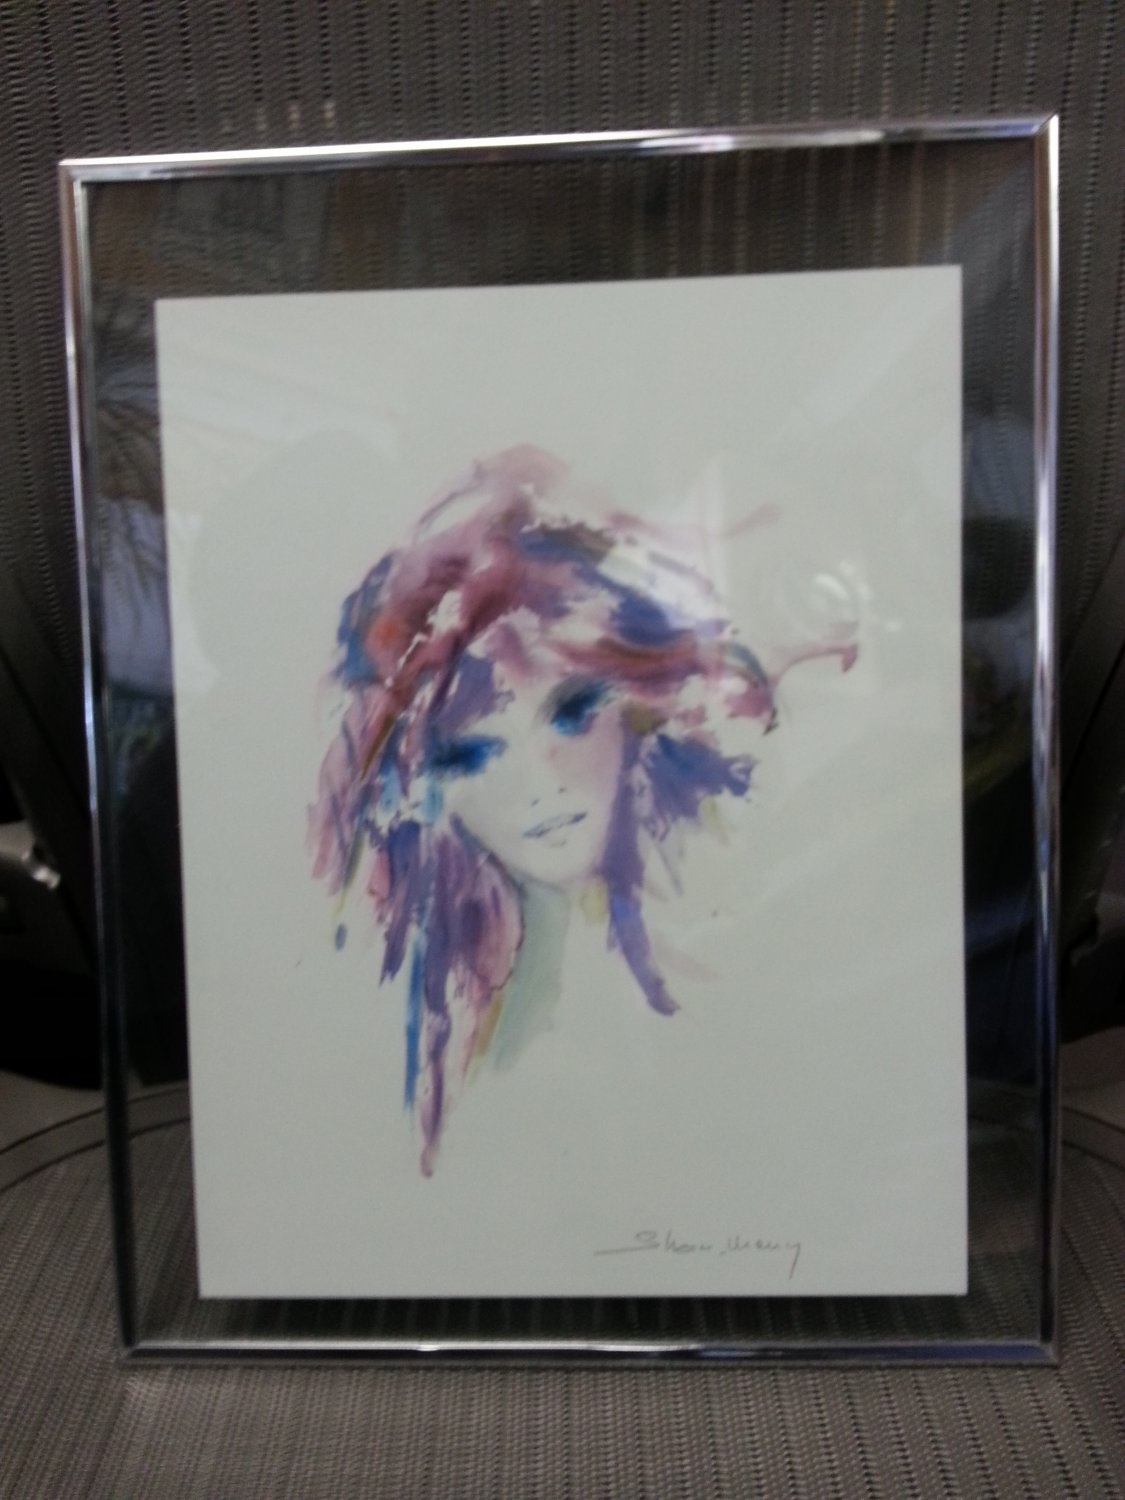 Park West Quot Amethysta Quot Seriolithograph By Shan Merry In